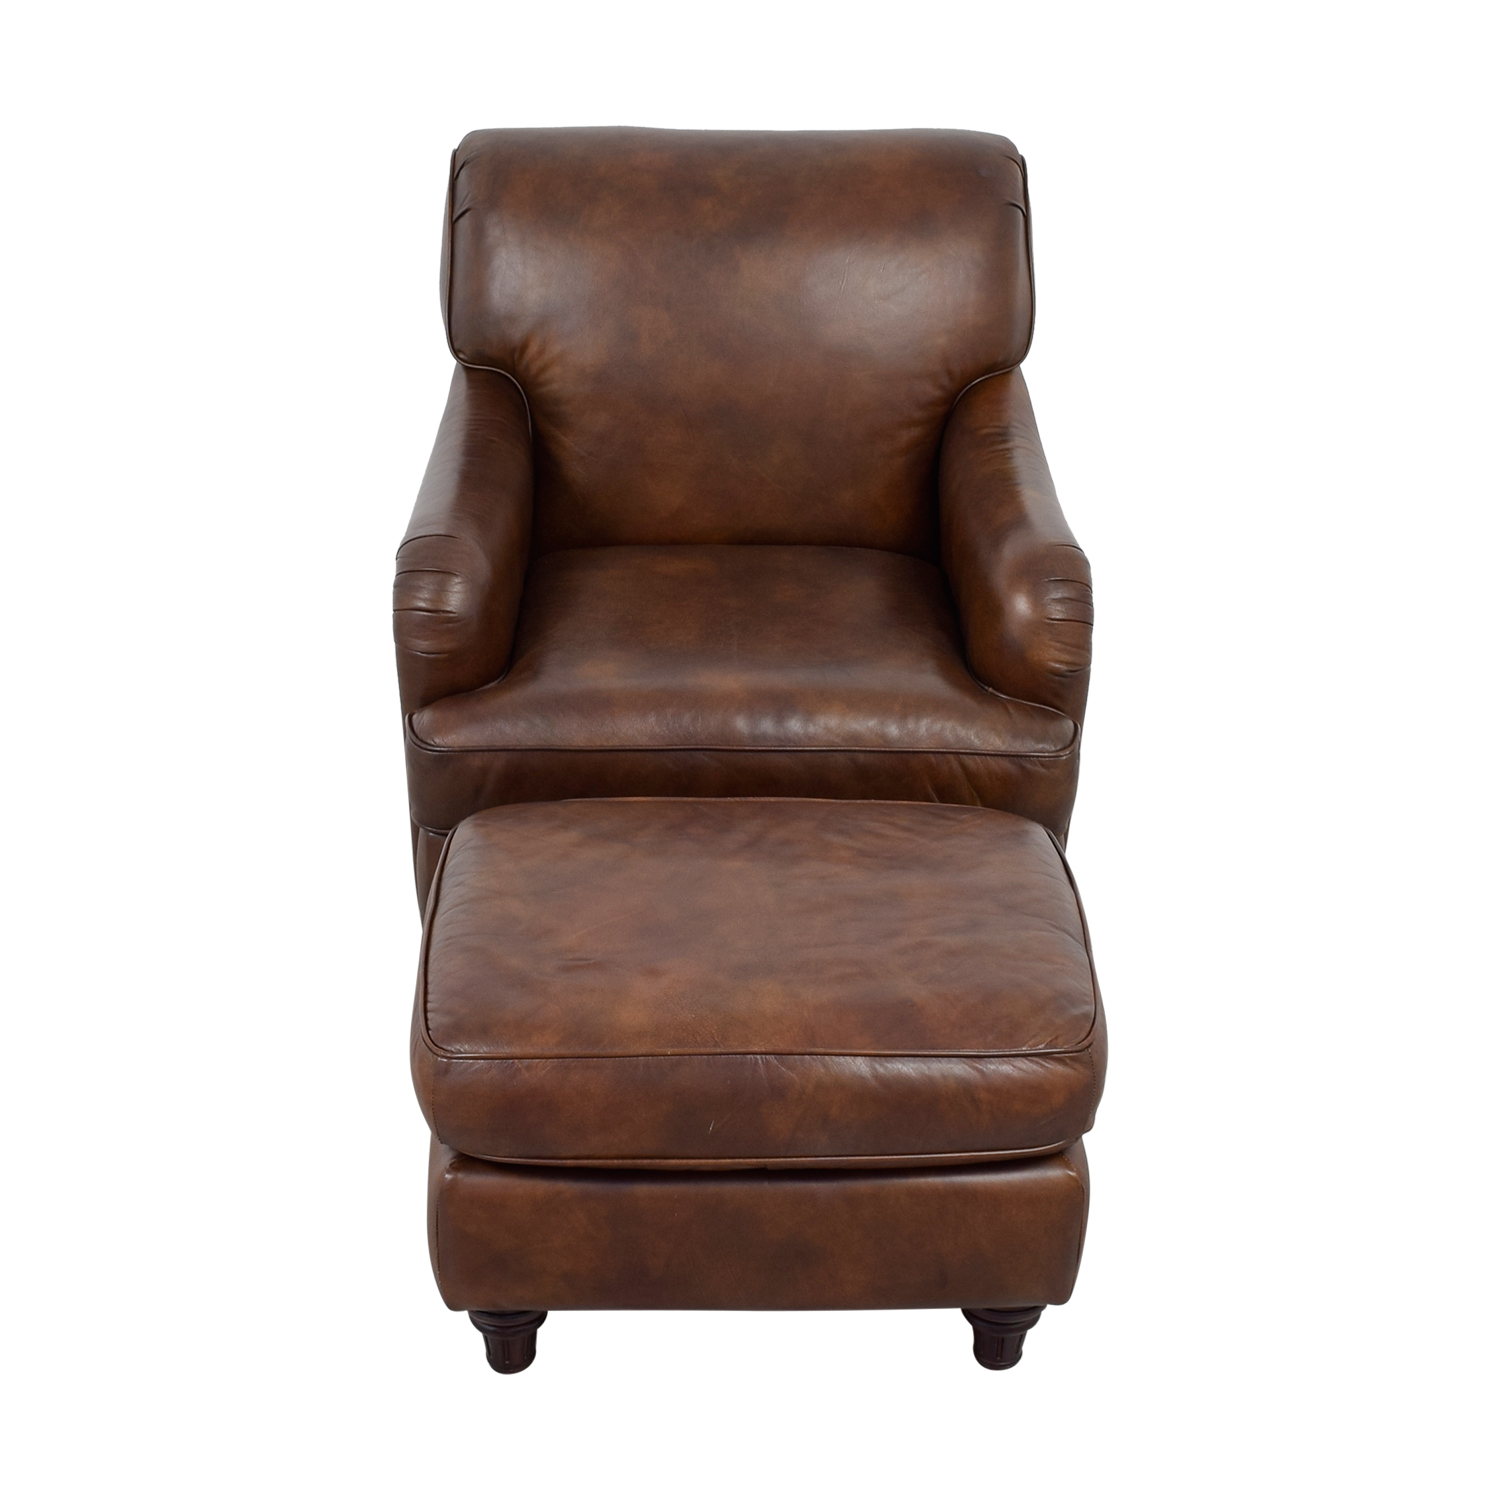 Swell 79 Off Lane Furniture Lane Leather Chair And Ottoman Chairs Pabps2019 Chair Design Images Pabps2019Com